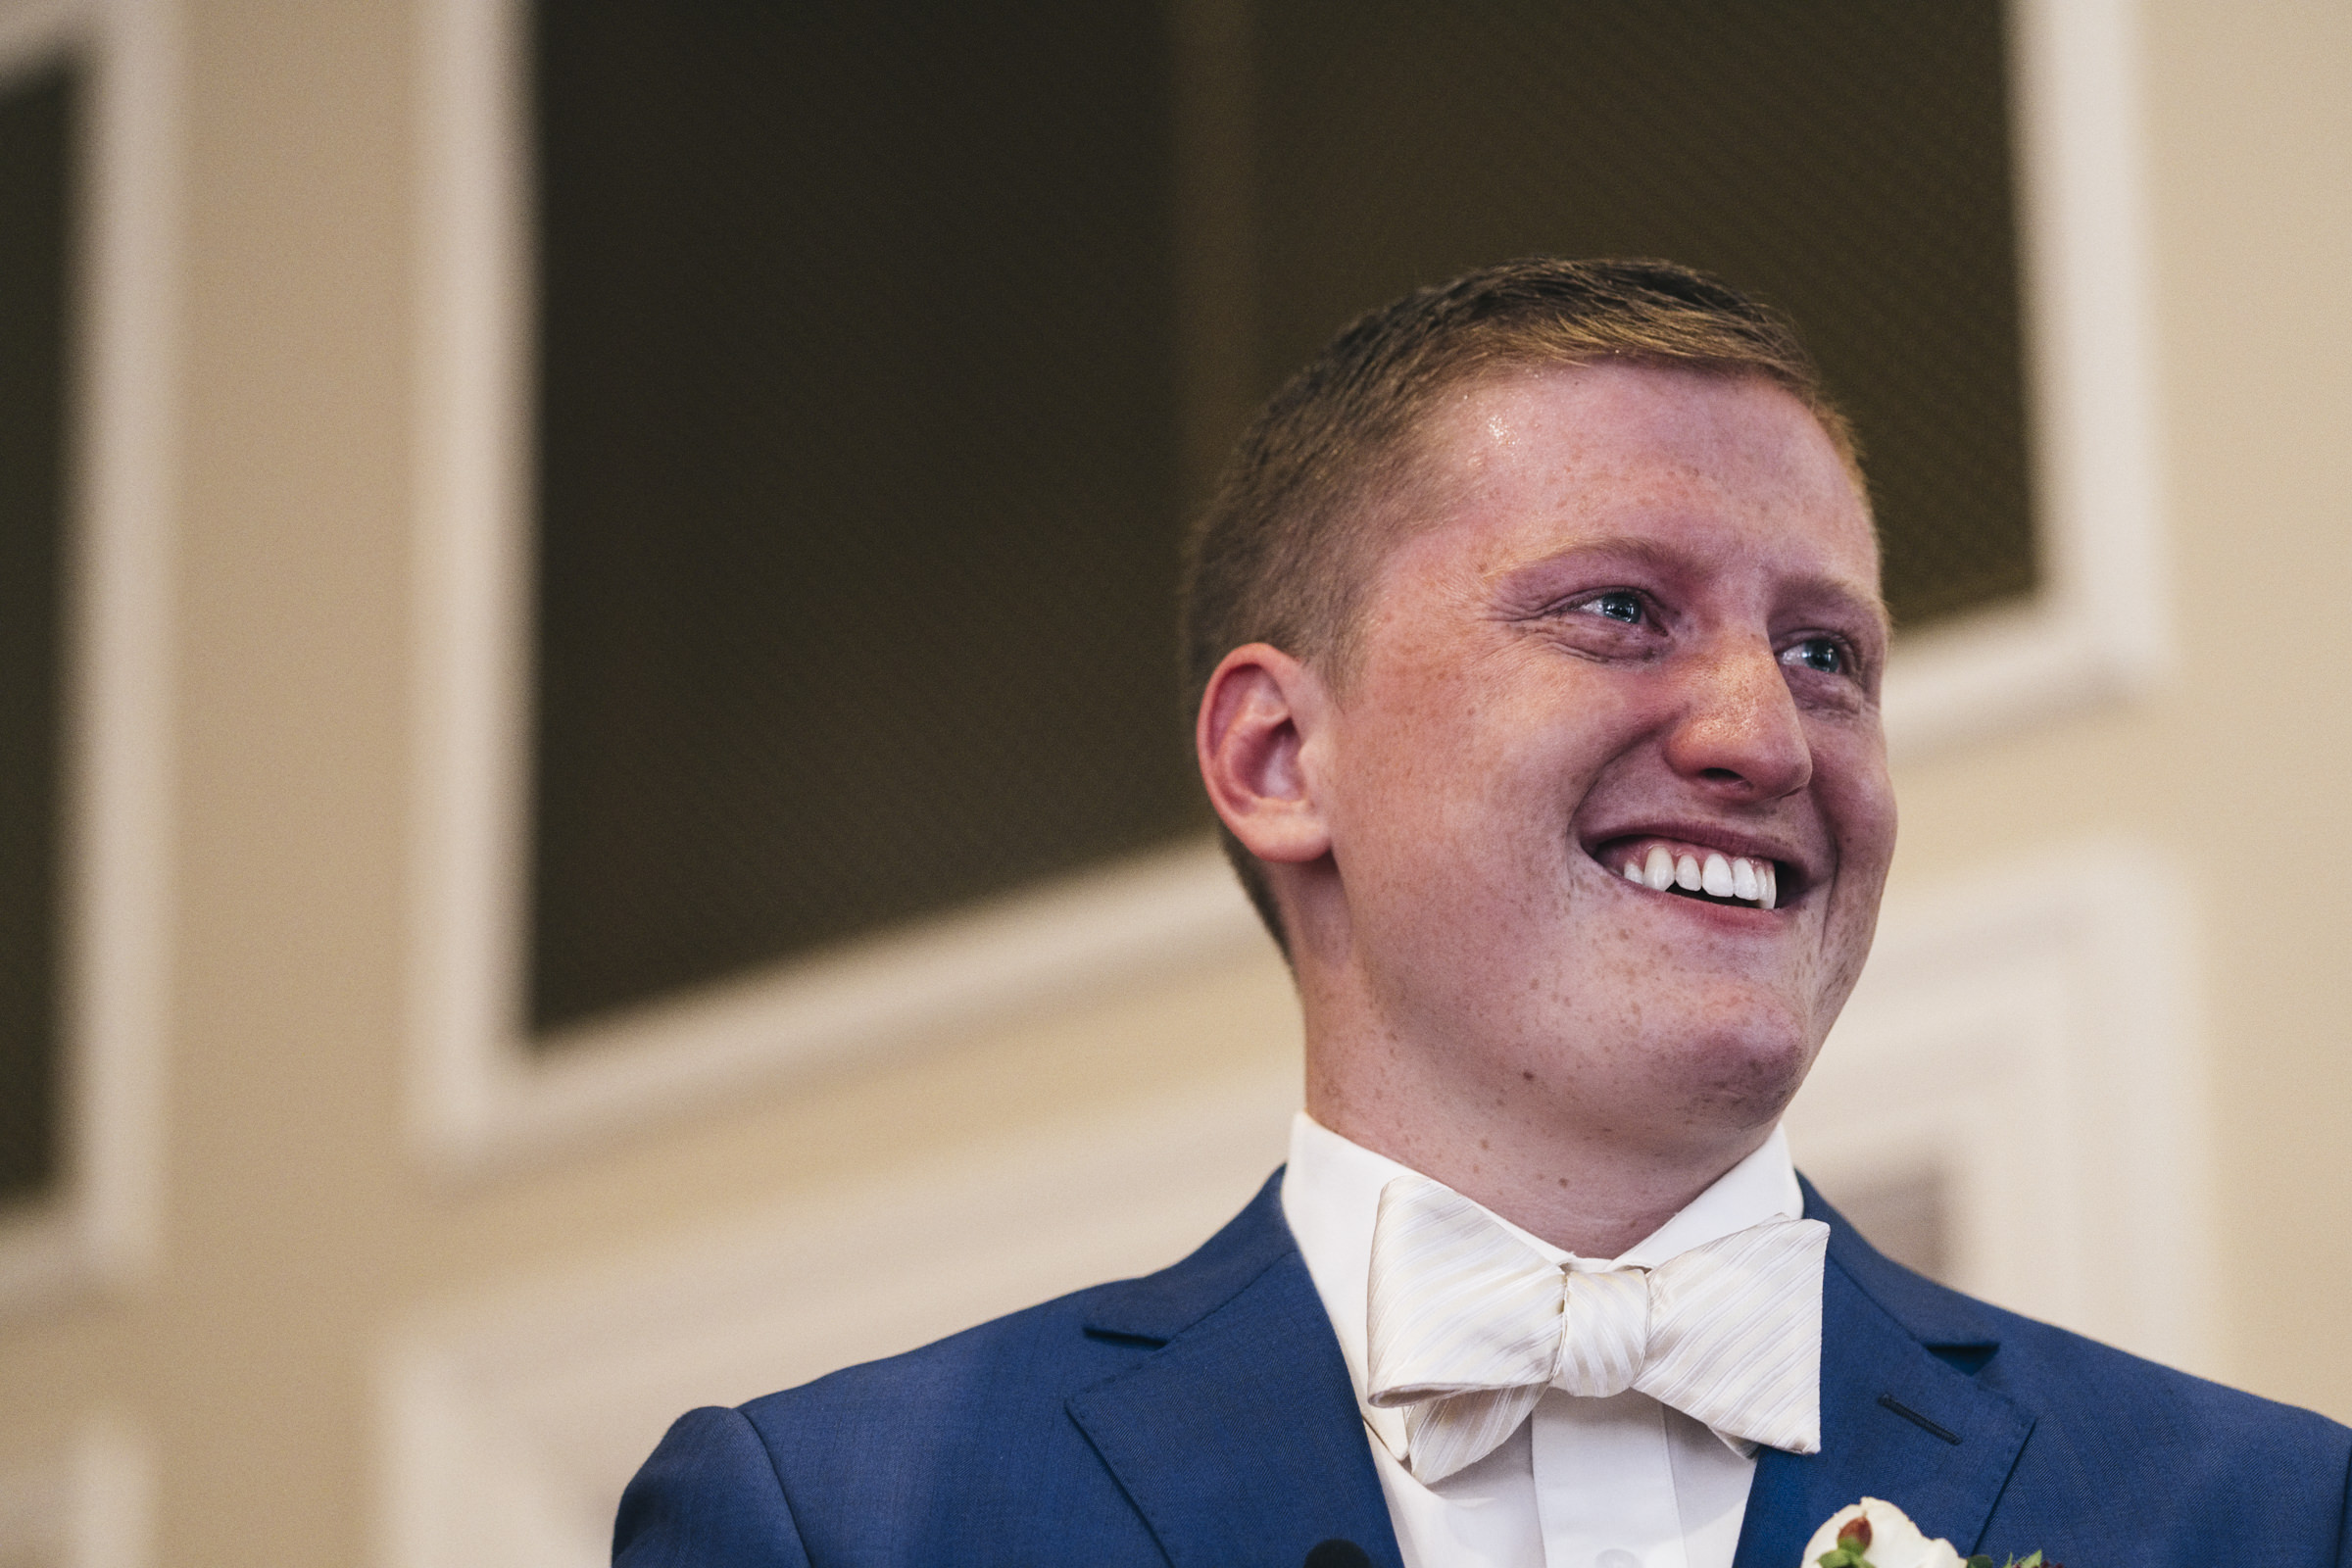 The groom gets emotional before his wedding ceremony in Bowling Green Ohio